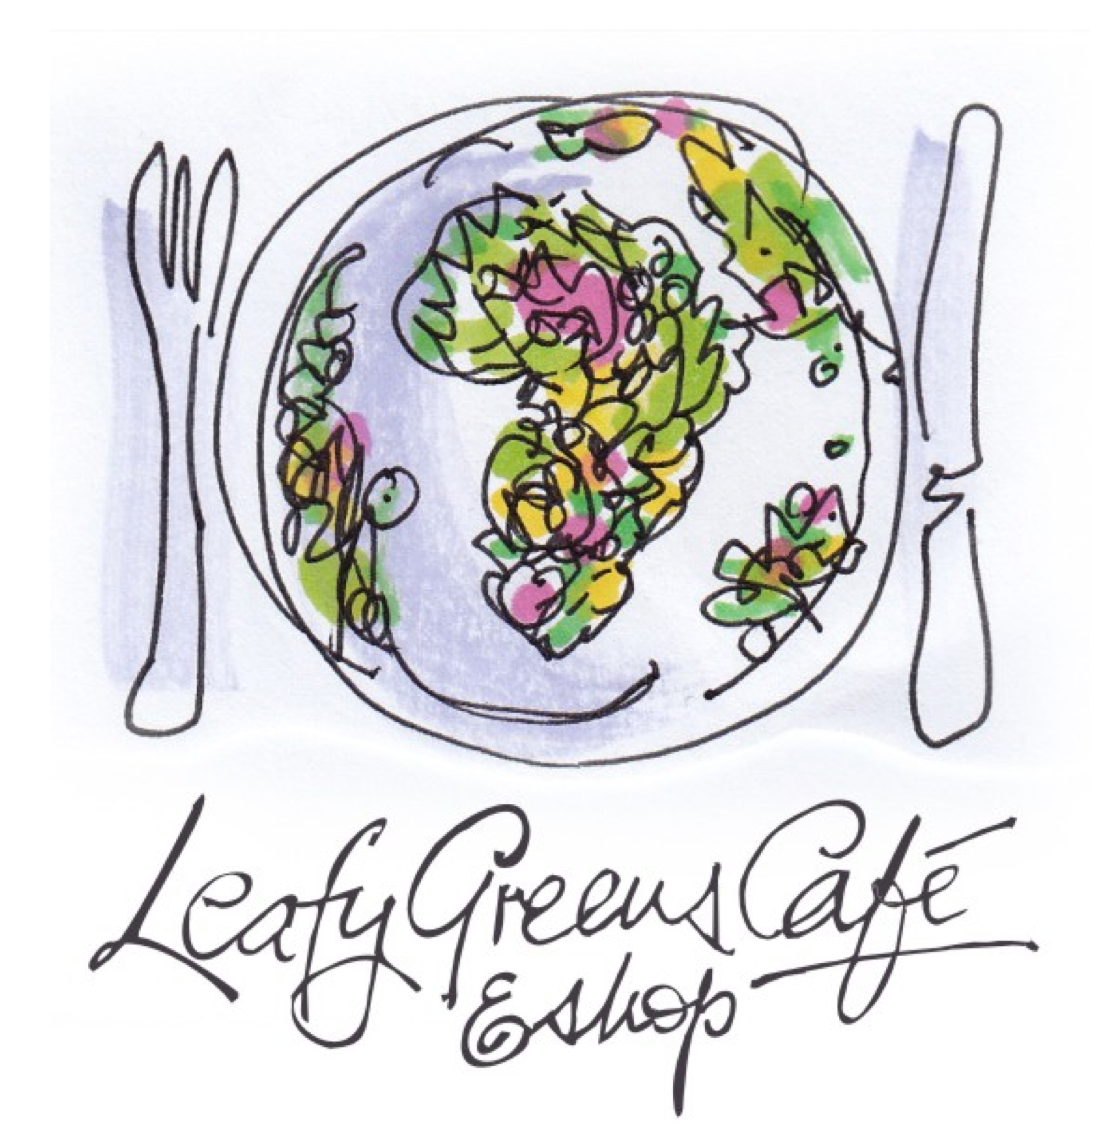 logo louis leafy greens cafe